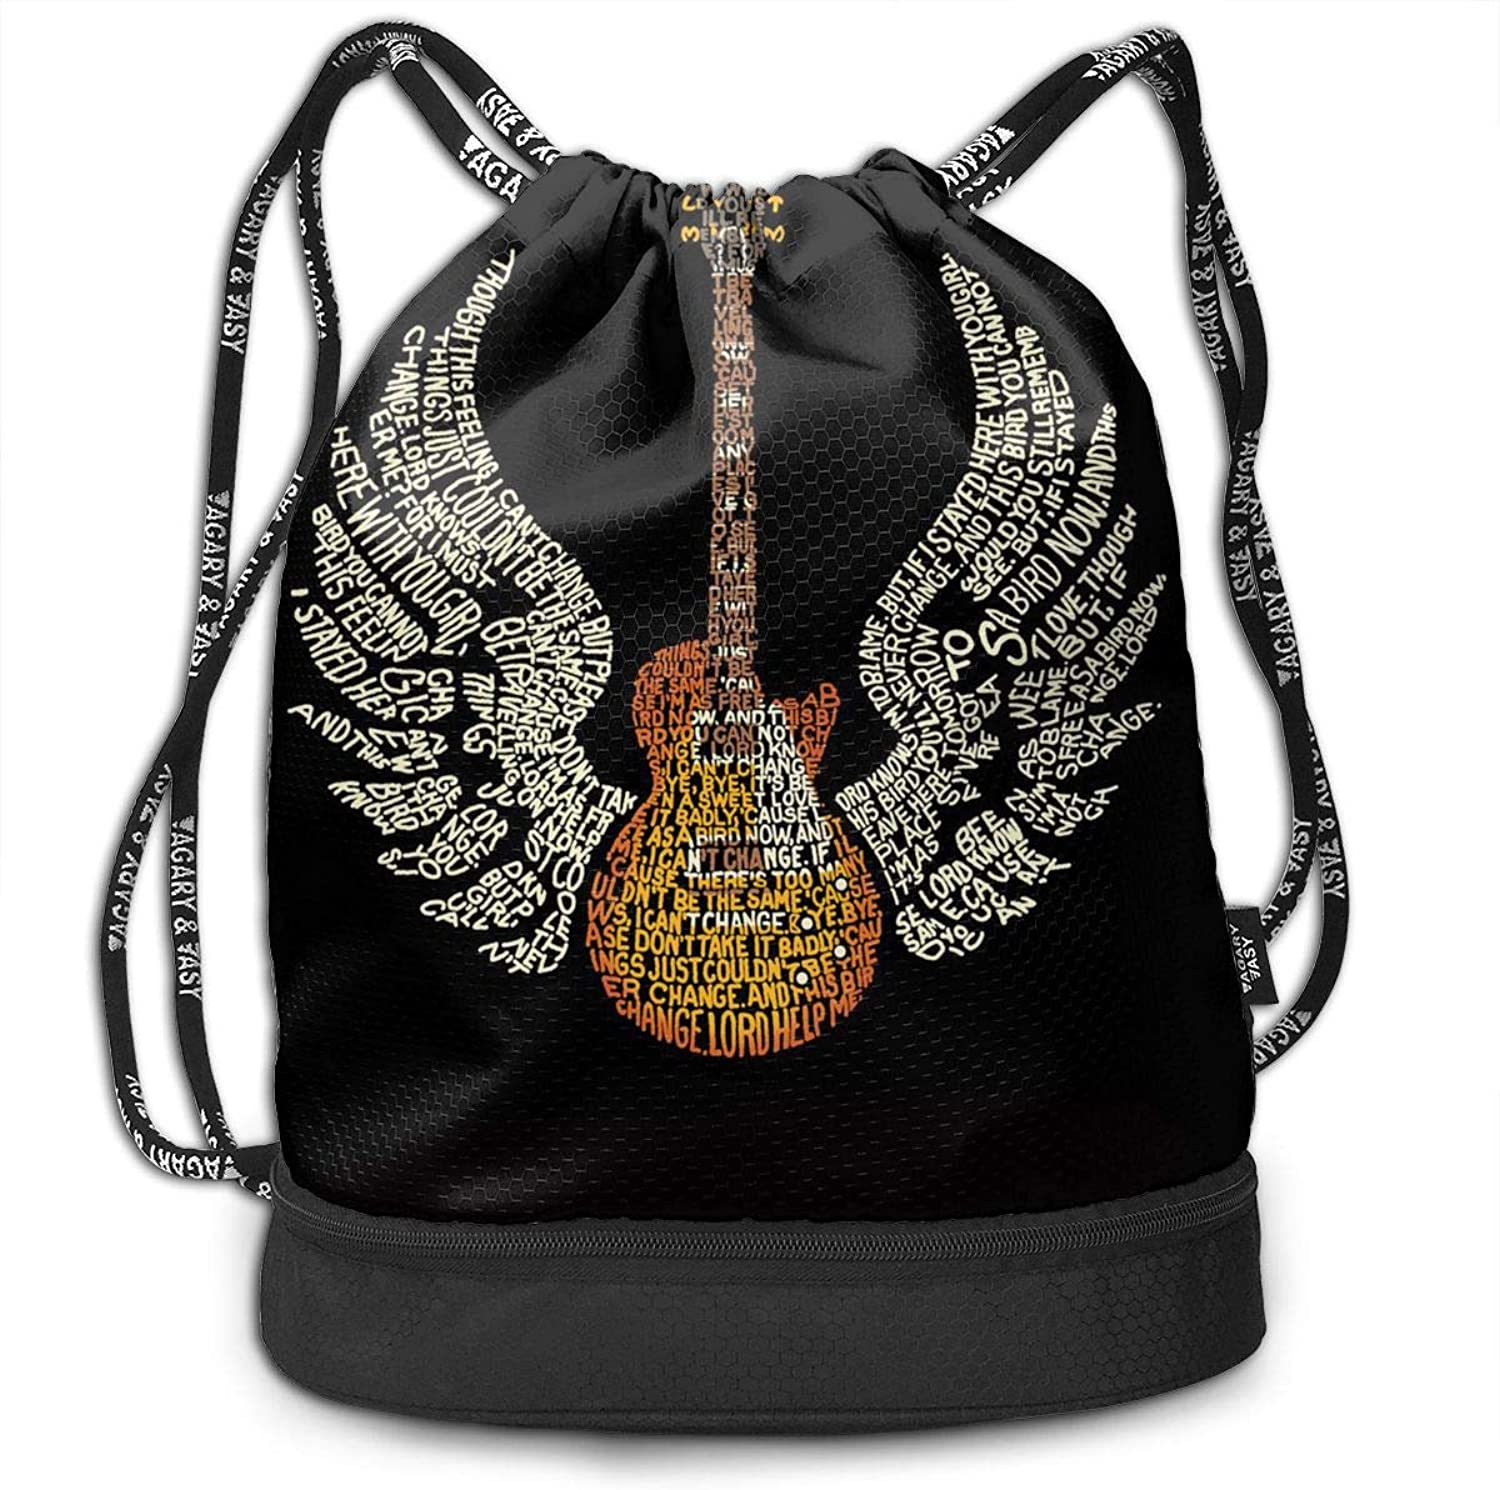 Gymsack Guitar with Lettering Wings Print Drawstring Bags  Simple Hiking Sack